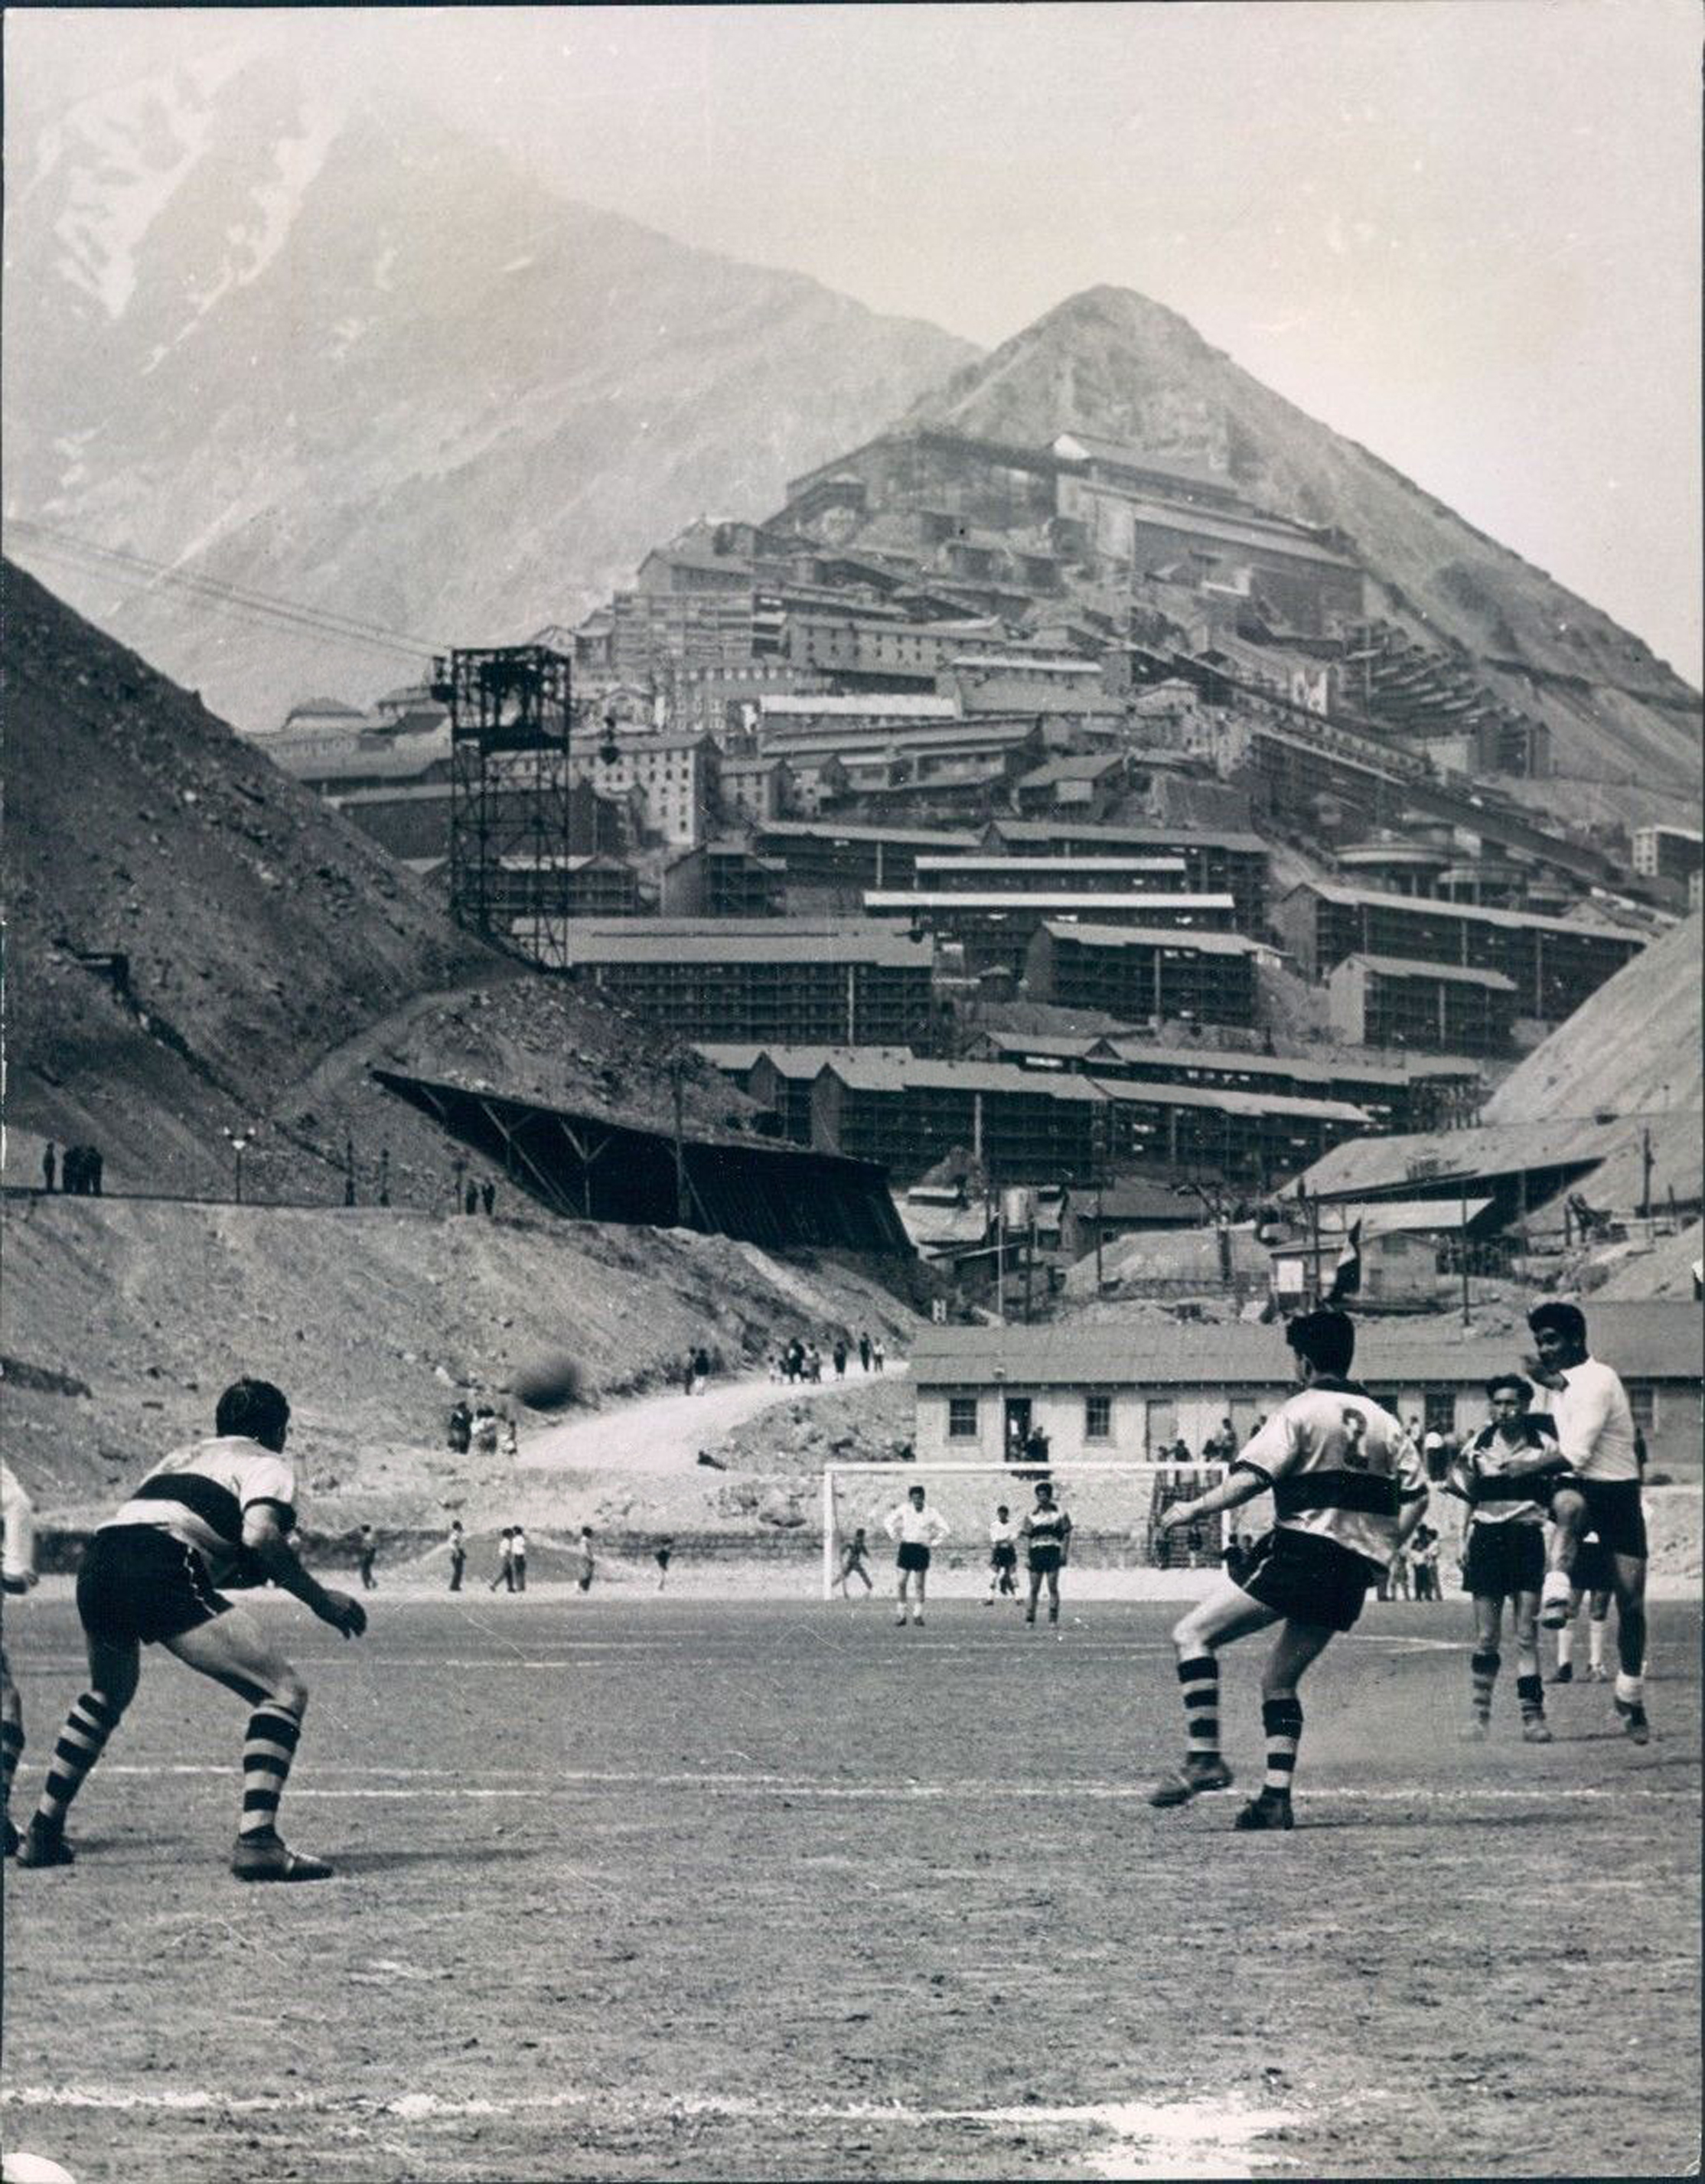 Enterreno - Fotos históricas de chile - fotos antiguas de Chile - Fútbol en Sewell, 1967